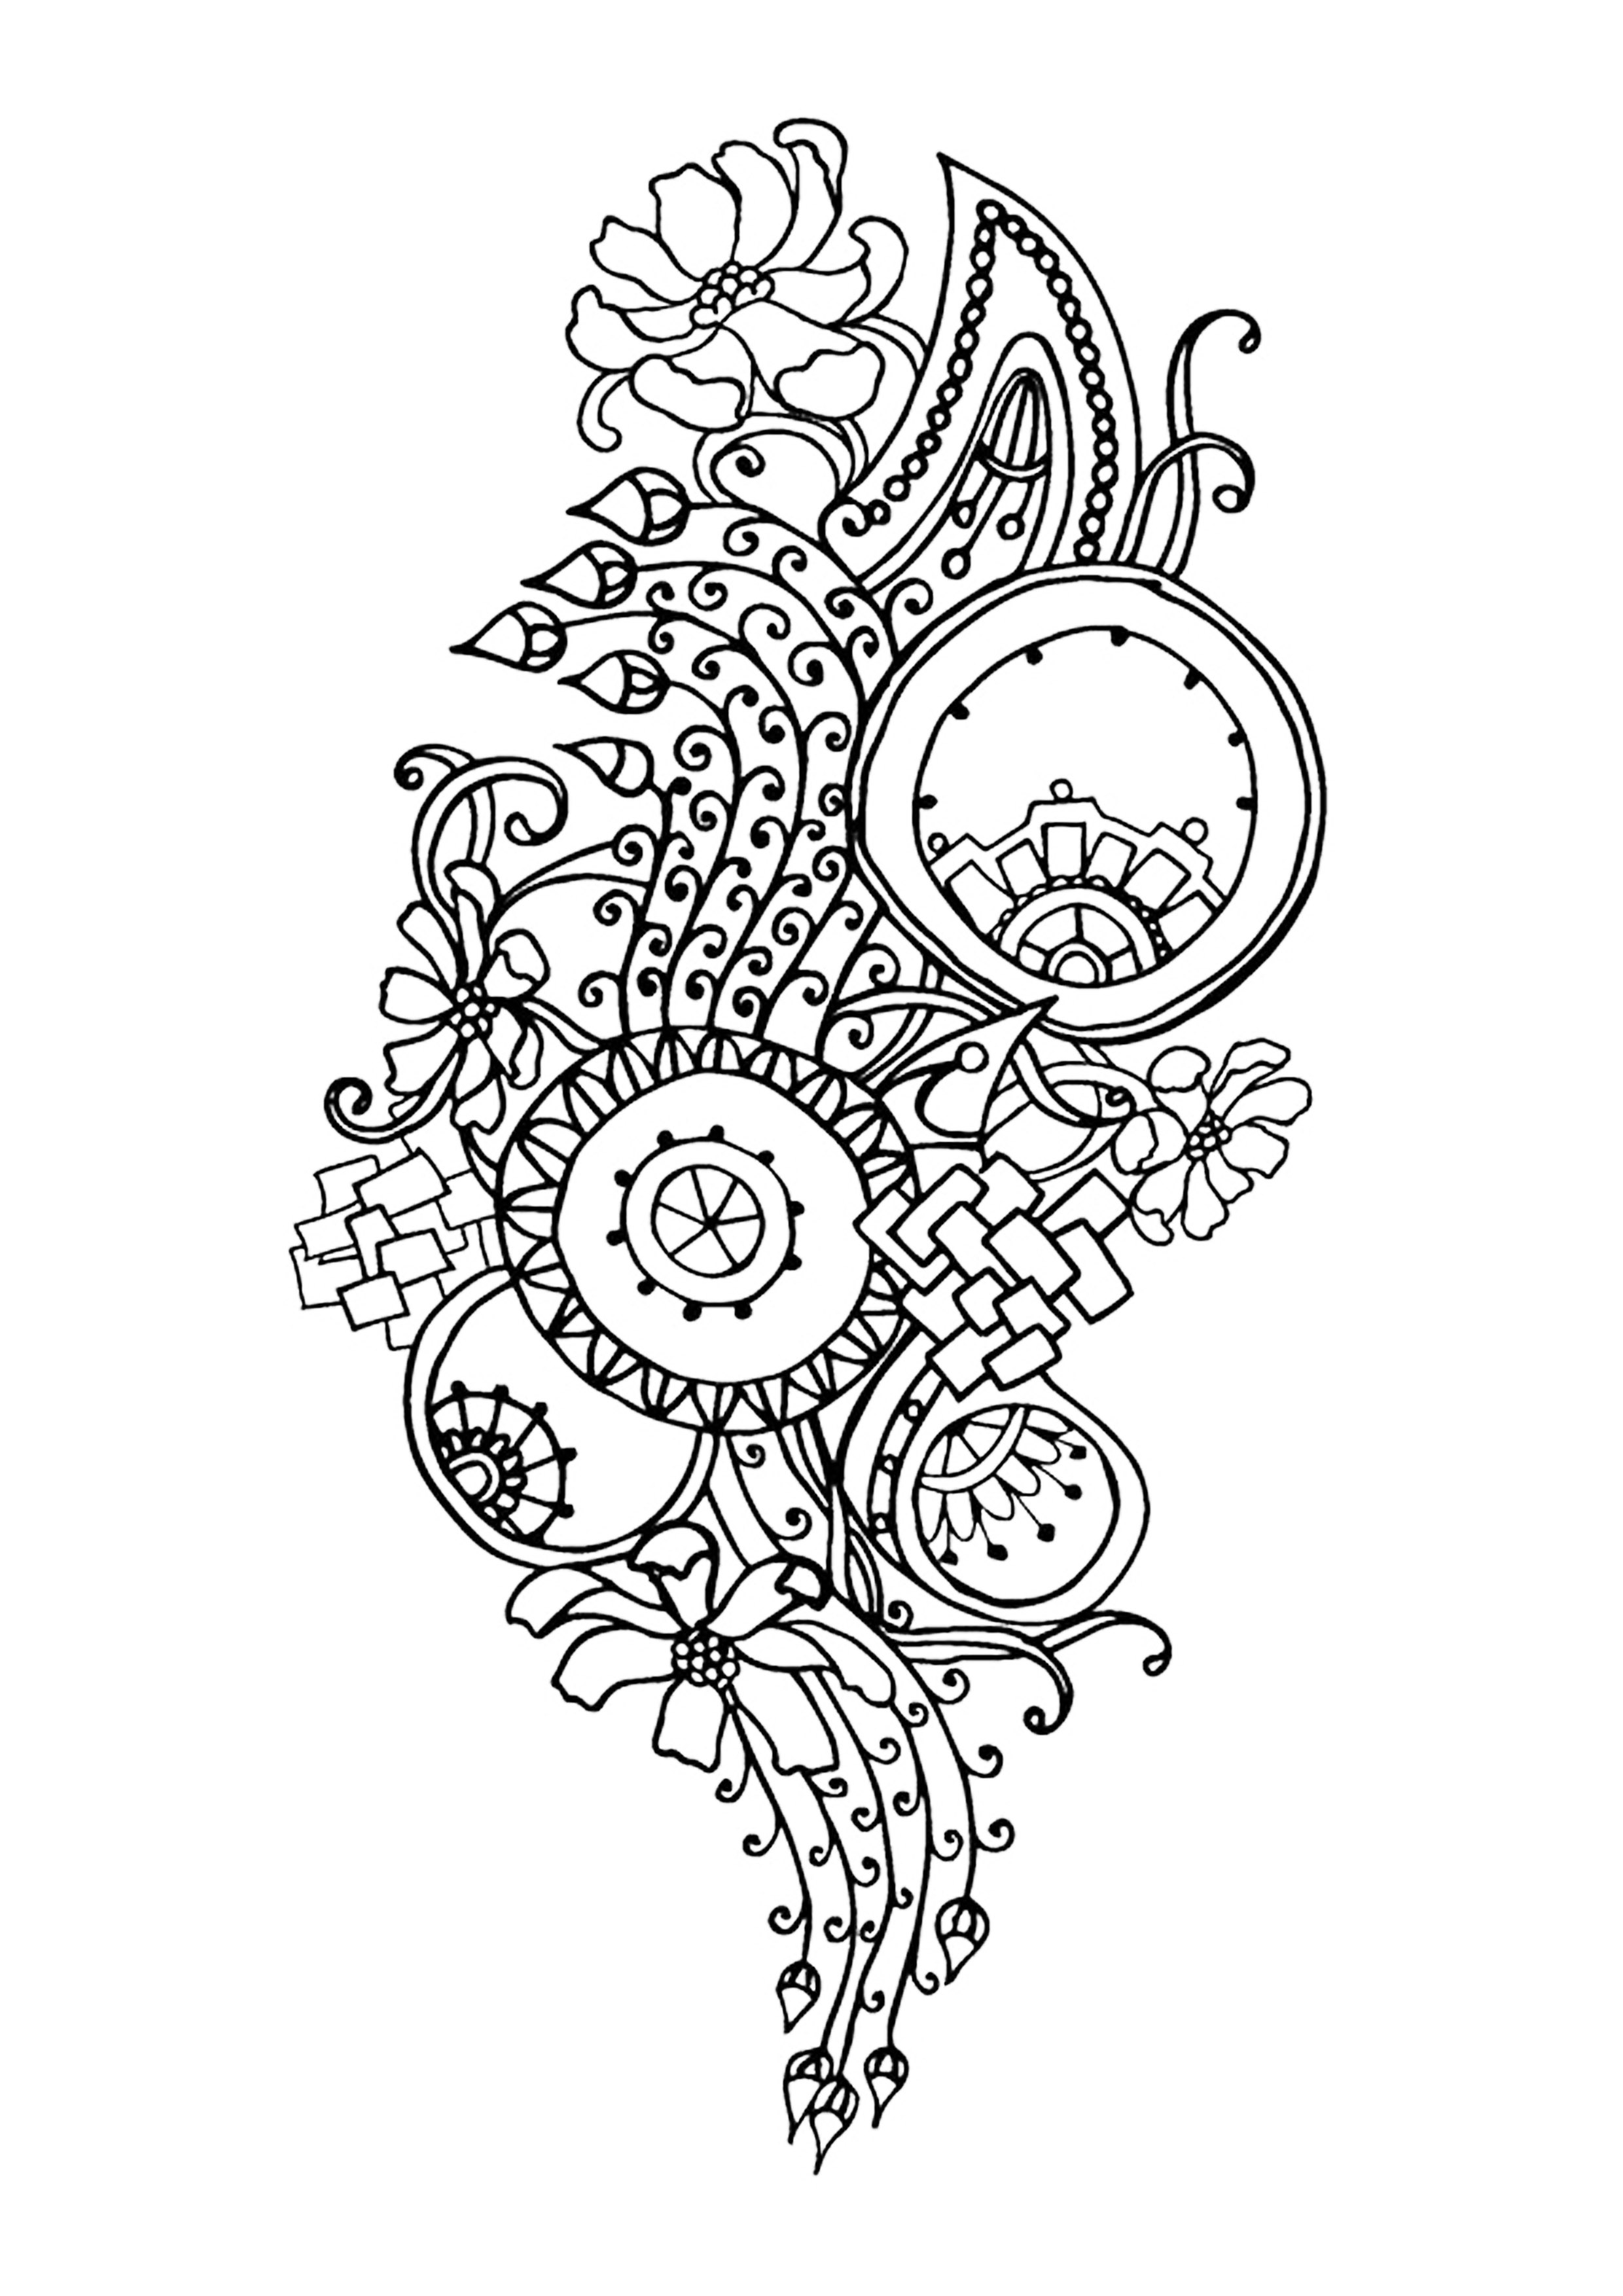 coloring flowers for adults the best flower adult coloring pages flower bouquet with a flowers adults coloring for